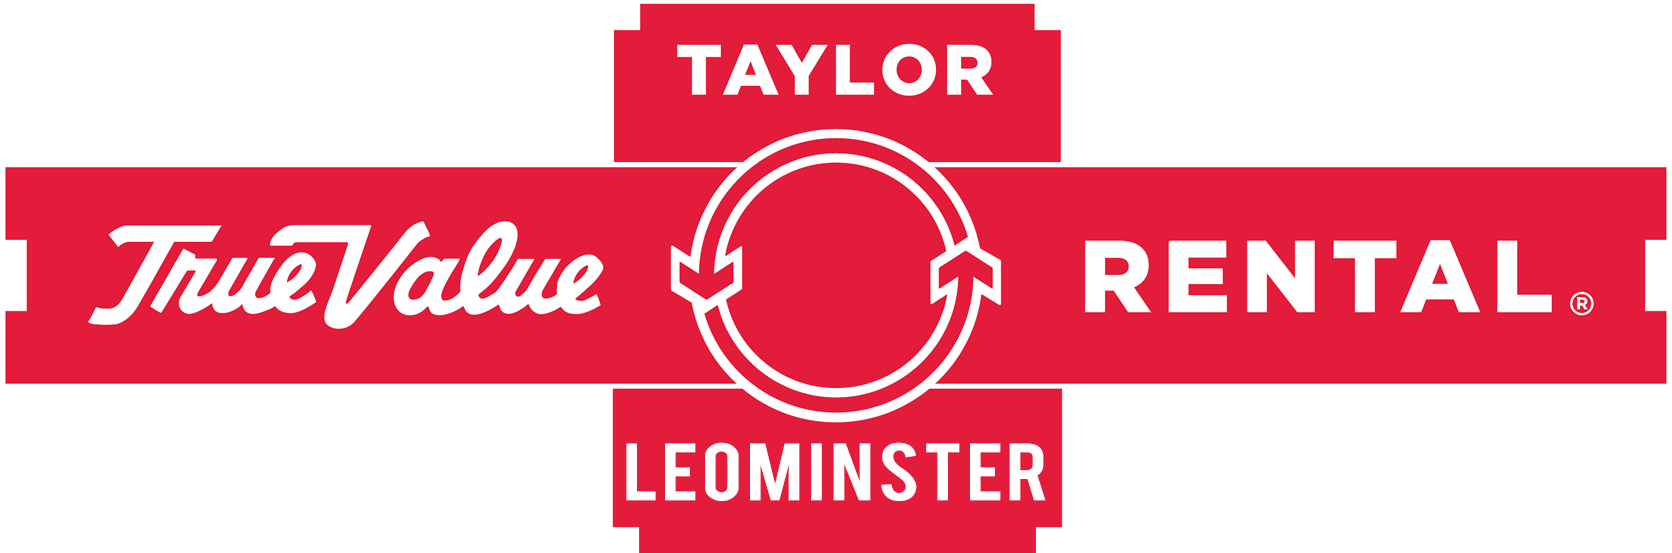 Taylor True Value Rental of Leominster MA